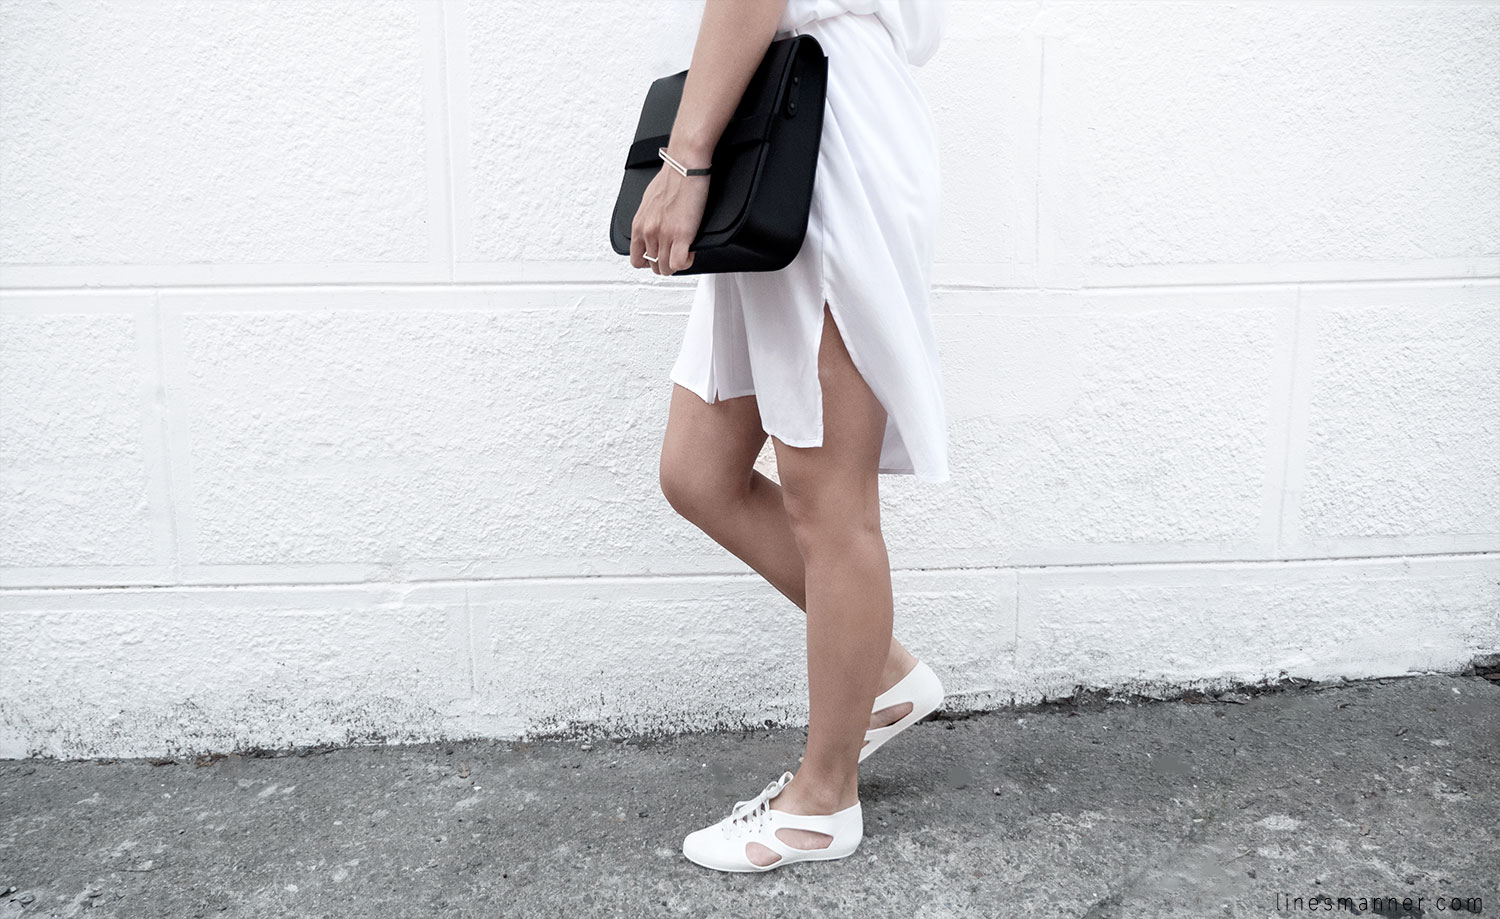 Lines-Manner-Whiteout-Fashion-Minimal-Clean-Fresh-Brigthly-All_White-Monochrome-Immaculate-Trend-Style-Sleek-Slouchy-Details-White_Shirt-Transeasonal-Dressing-Outfit-8